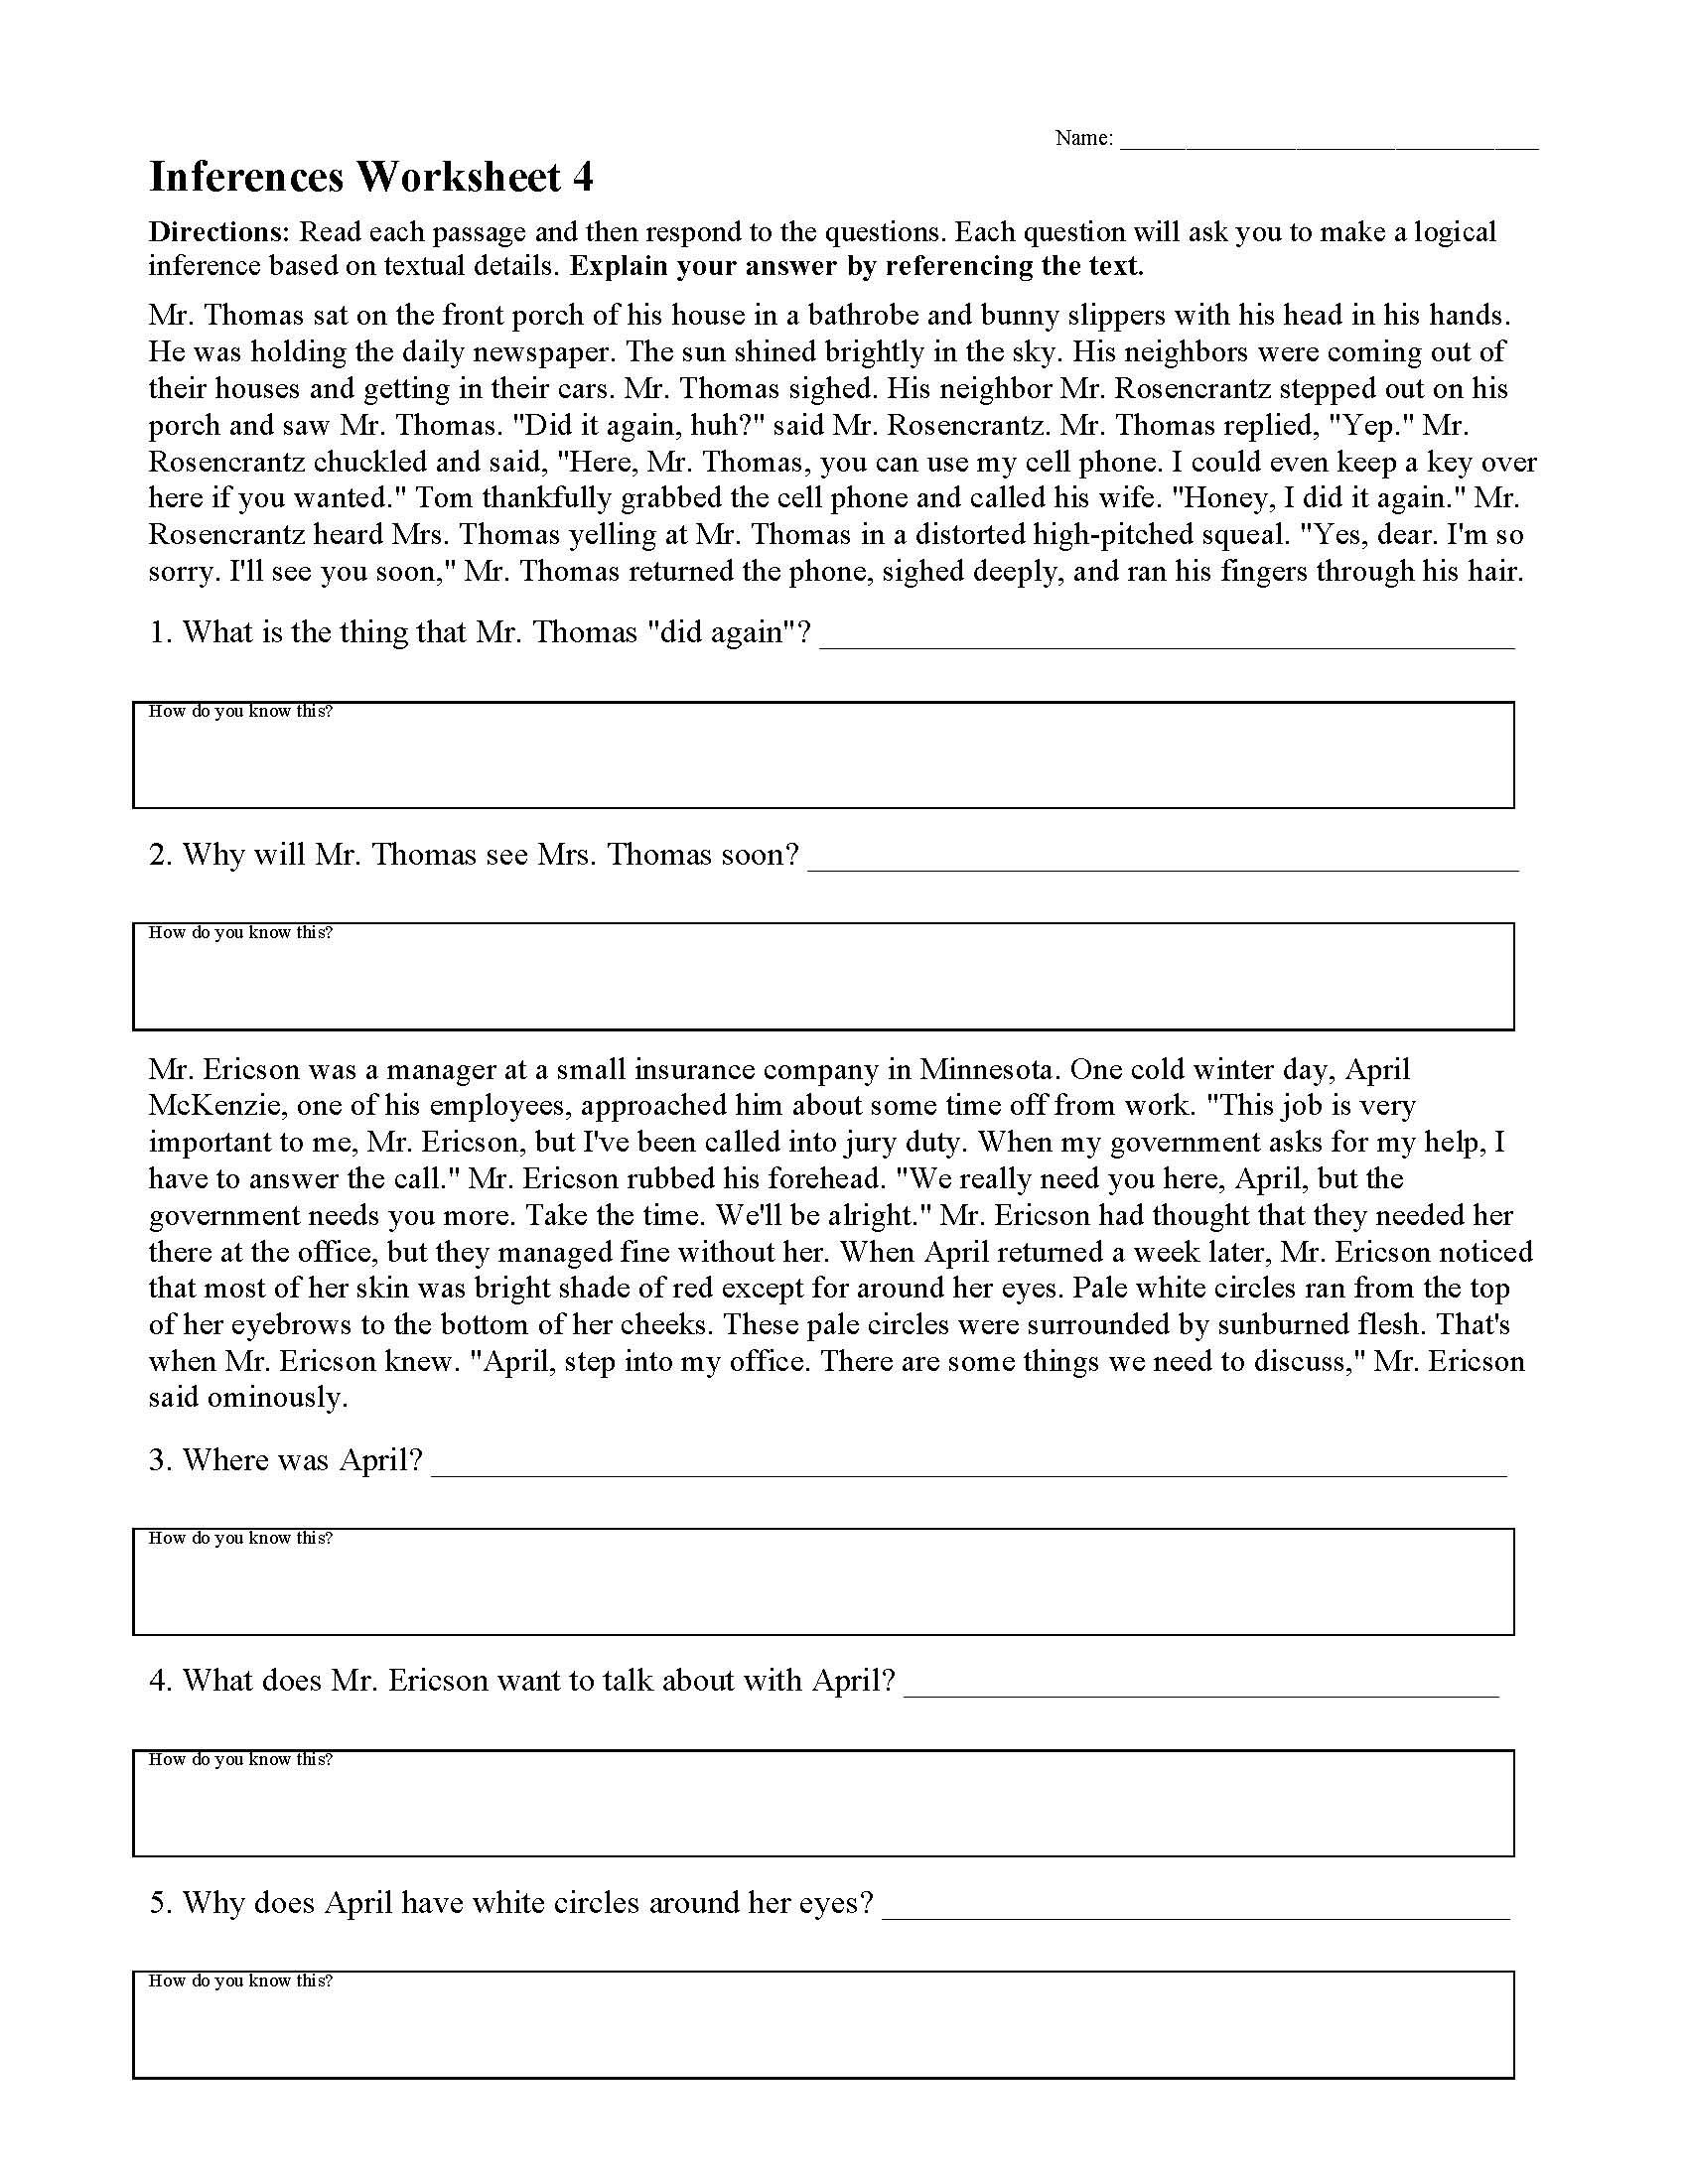 hight resolution of Inferences Worksheets   Ereading Worksheets